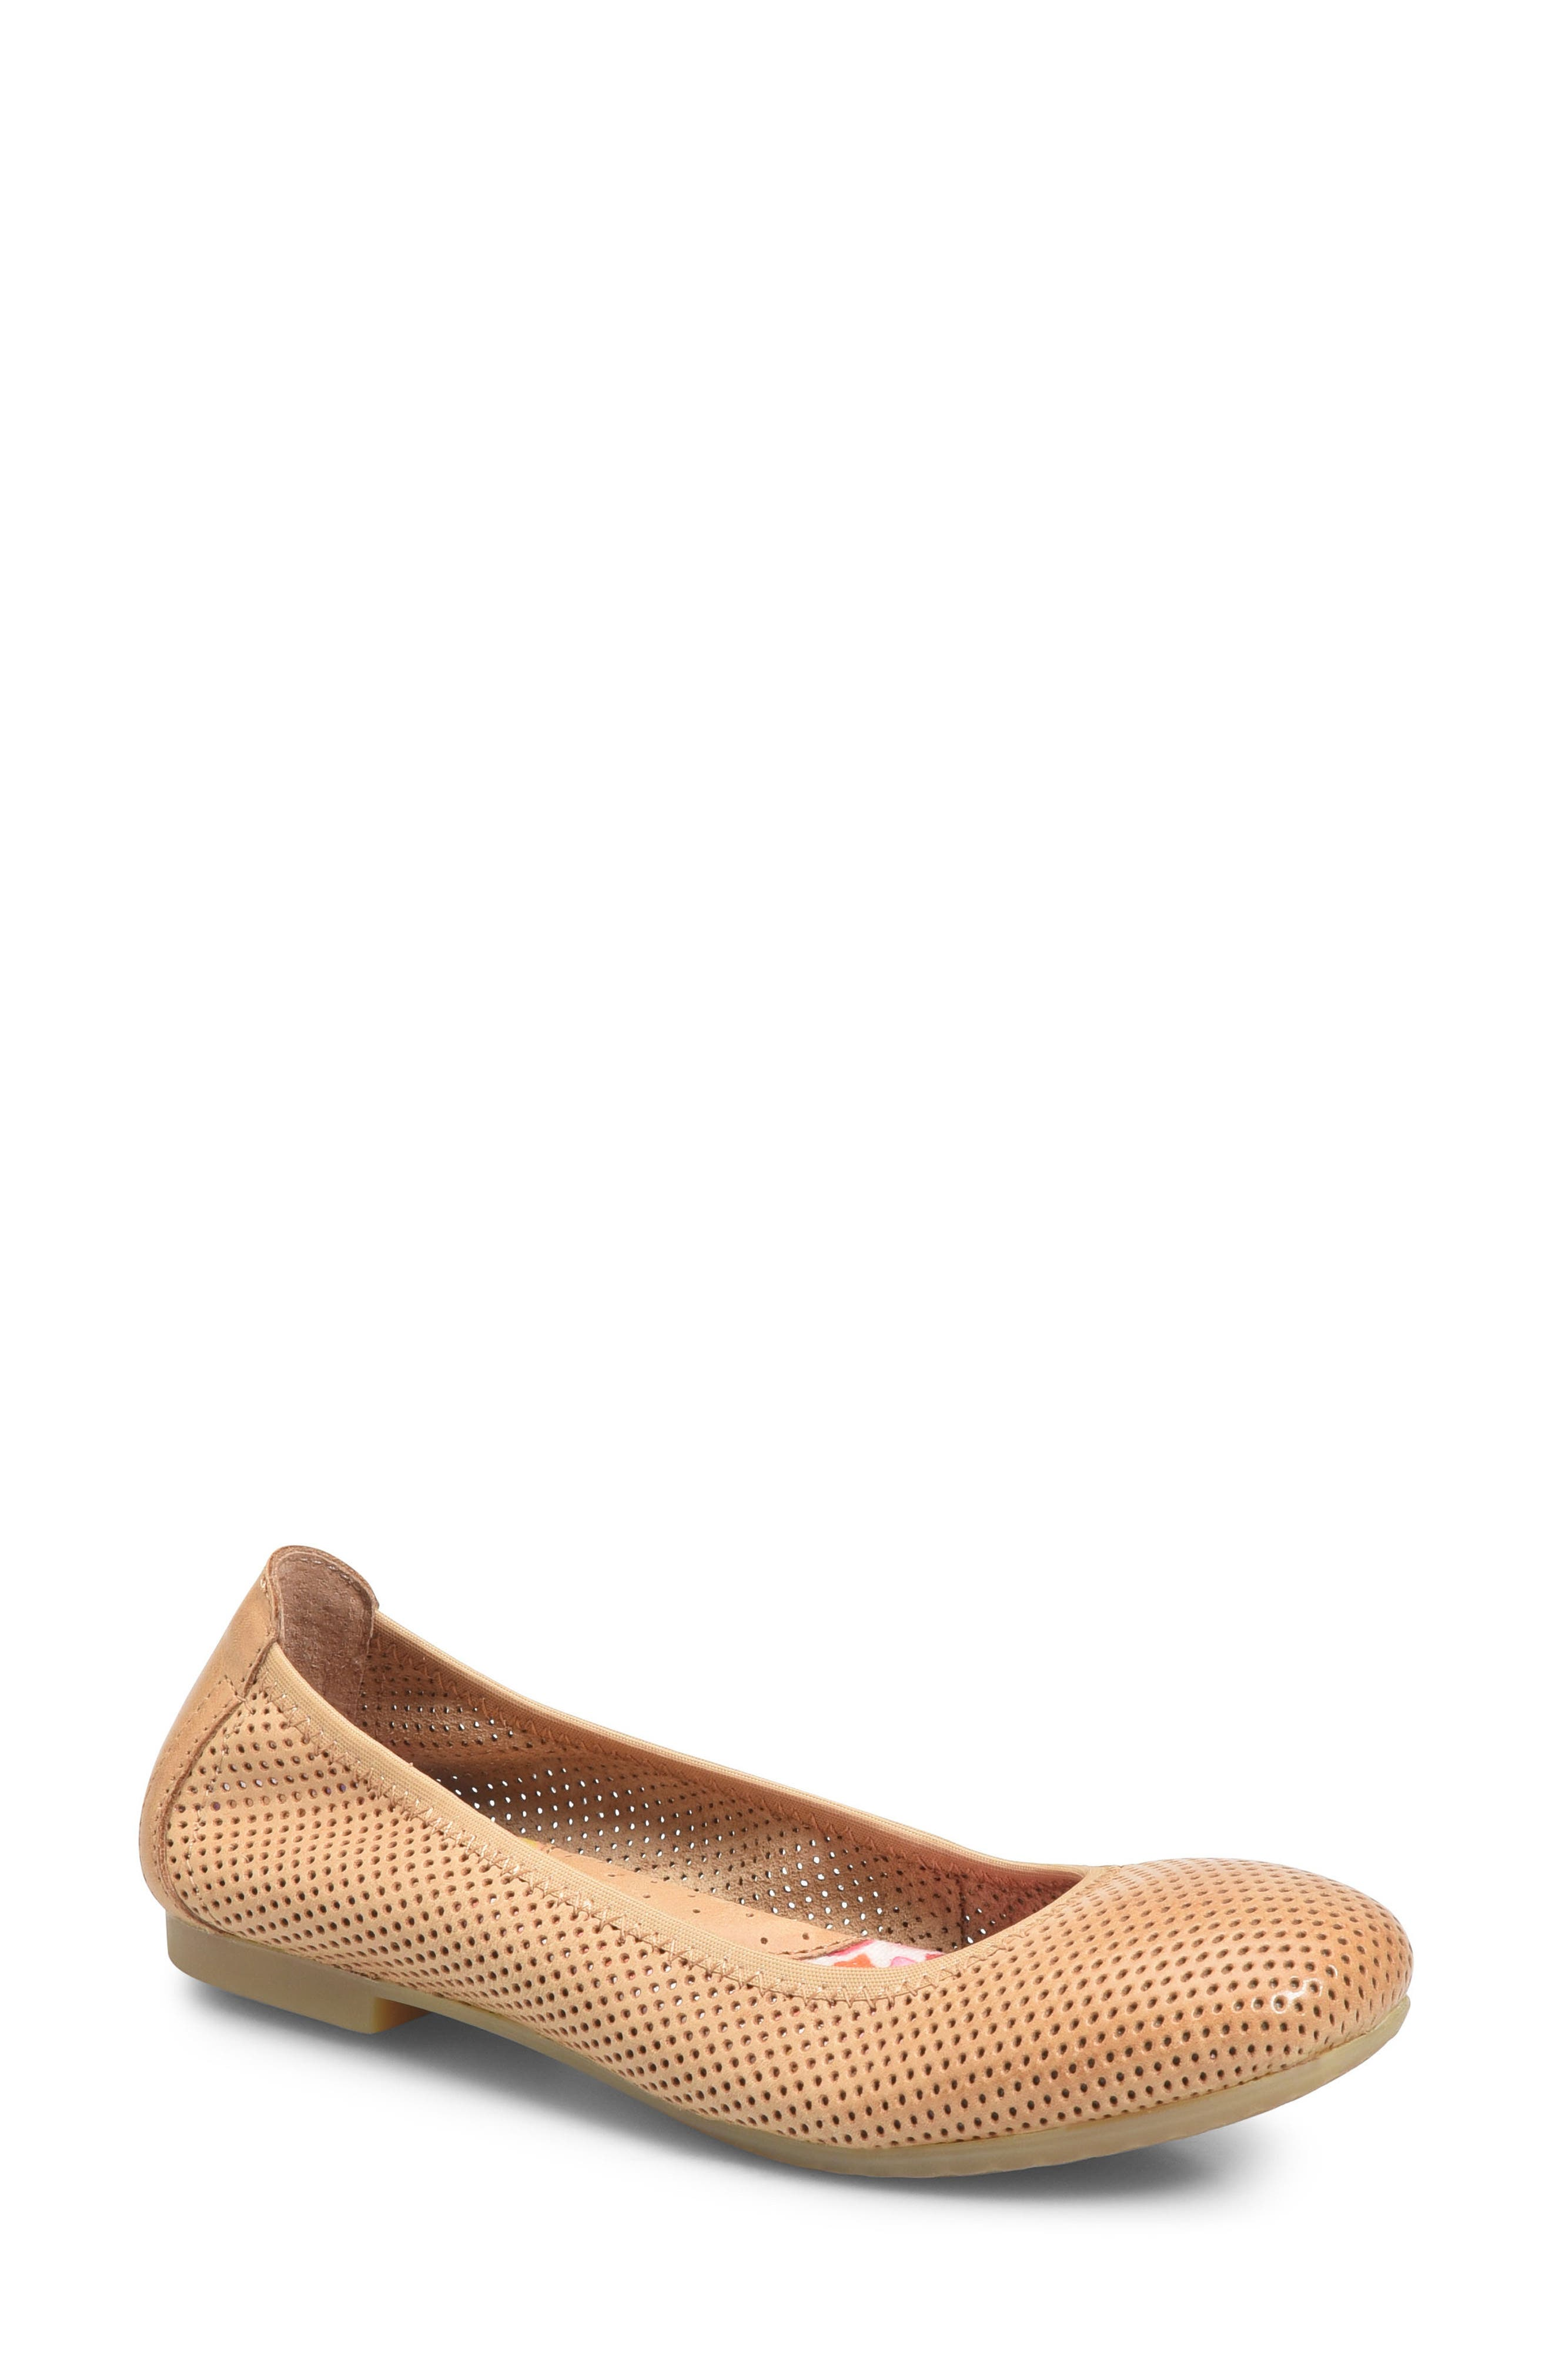 Alternate Image 1 Selected - Børn Julianne Perforated Flat (Women)